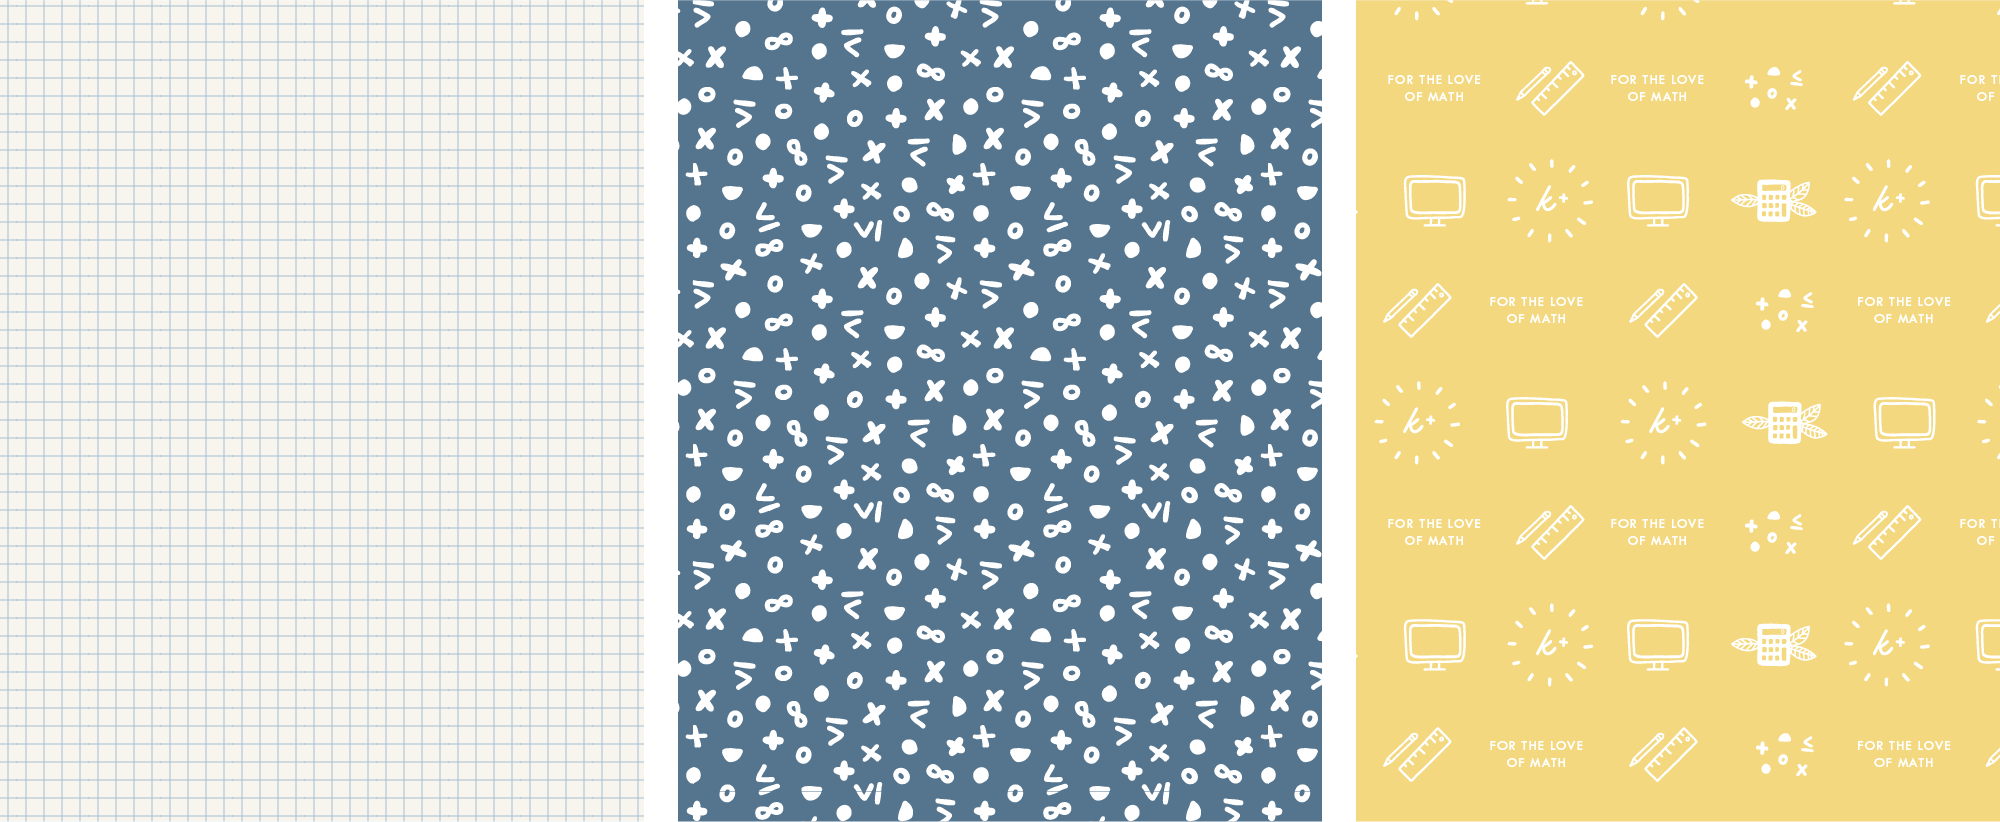 Krista King Math brand pattern designs   Brand design project created in collaboration between Spruce Rd. and Pace Creative Design Studio